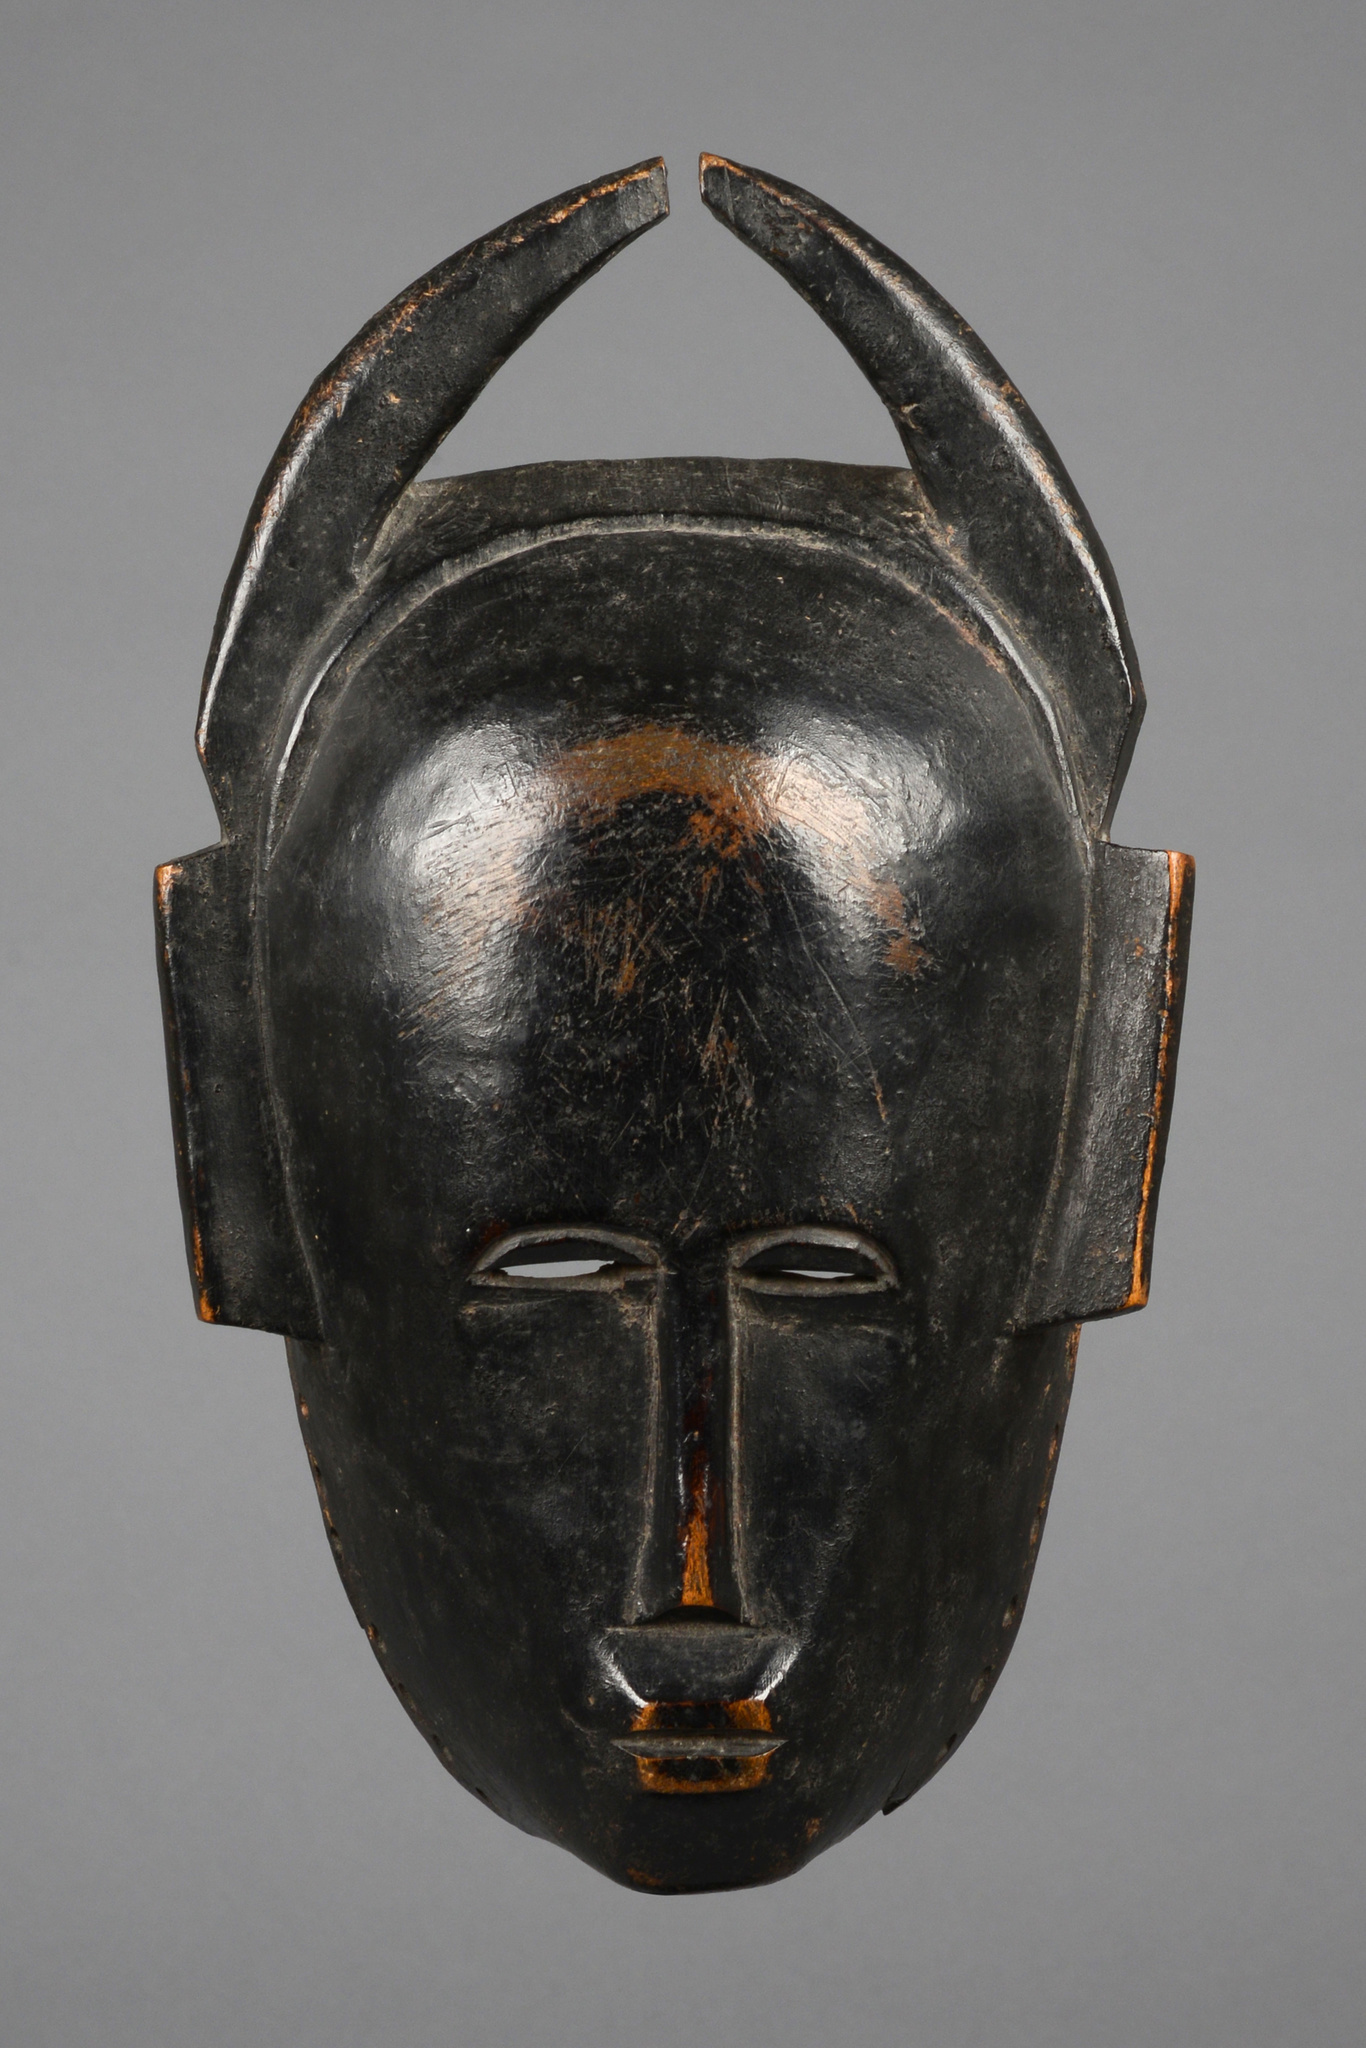 Anthropomorphic mask with horns